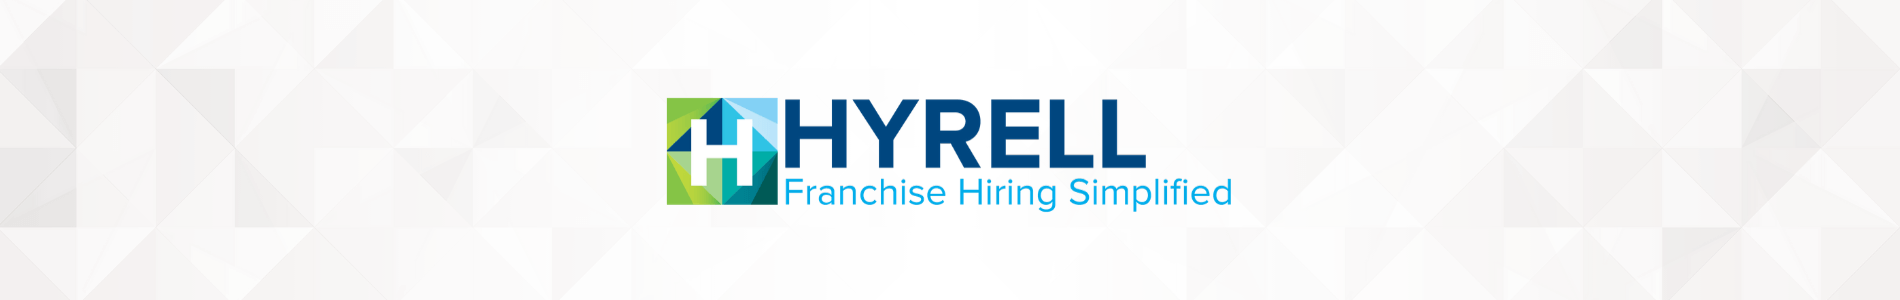 Hyrell Applicant tracking software press release